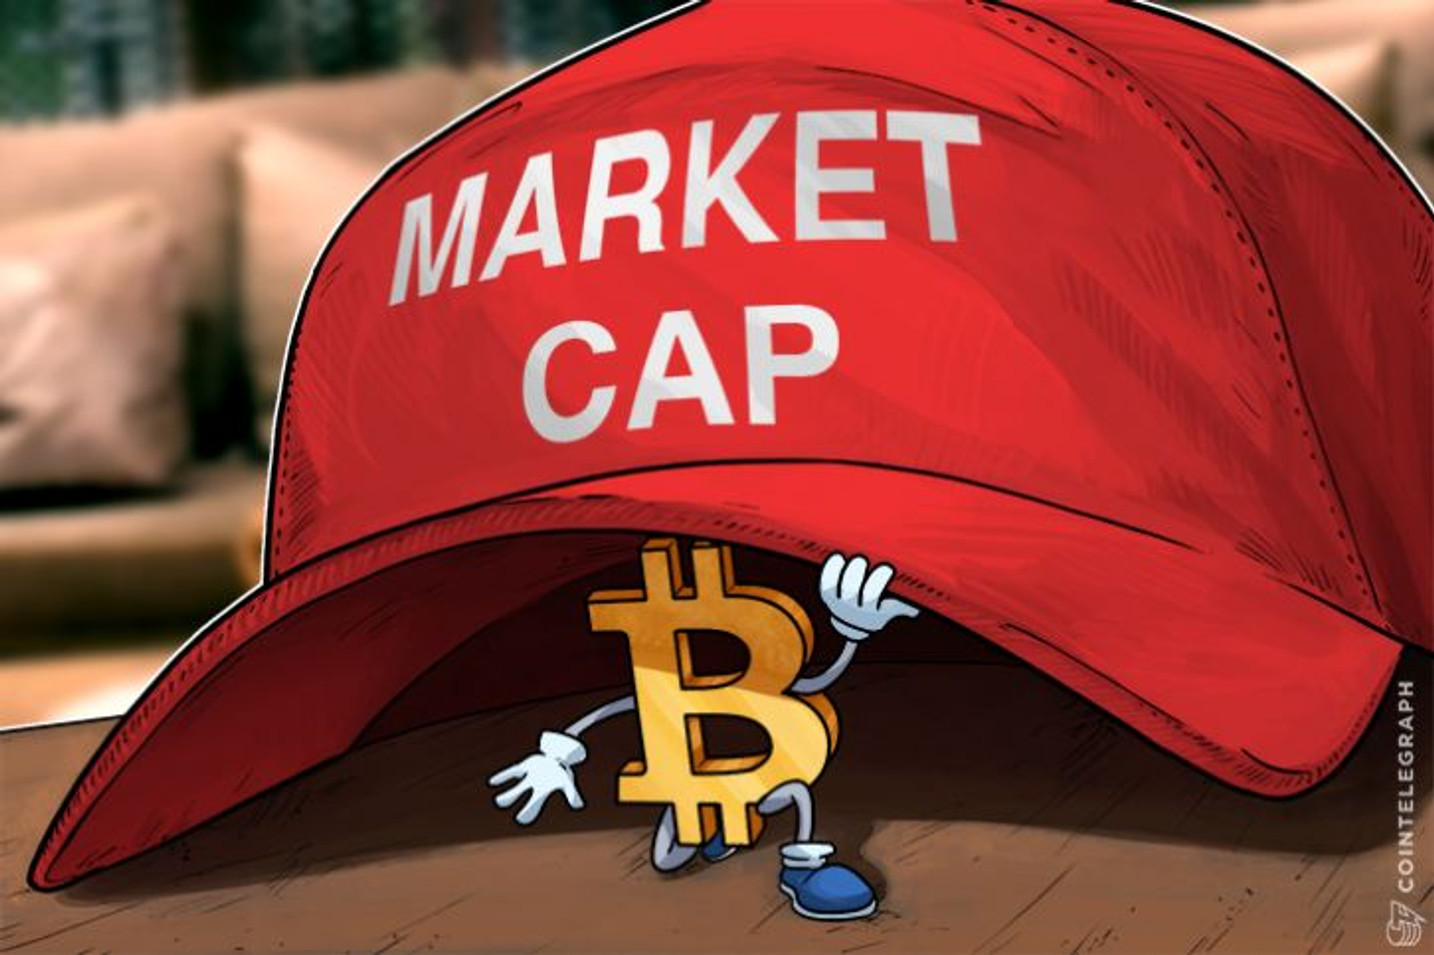 Record $121 Bln Crypto Market Cap Comes As Bitcoin Share Dwindles